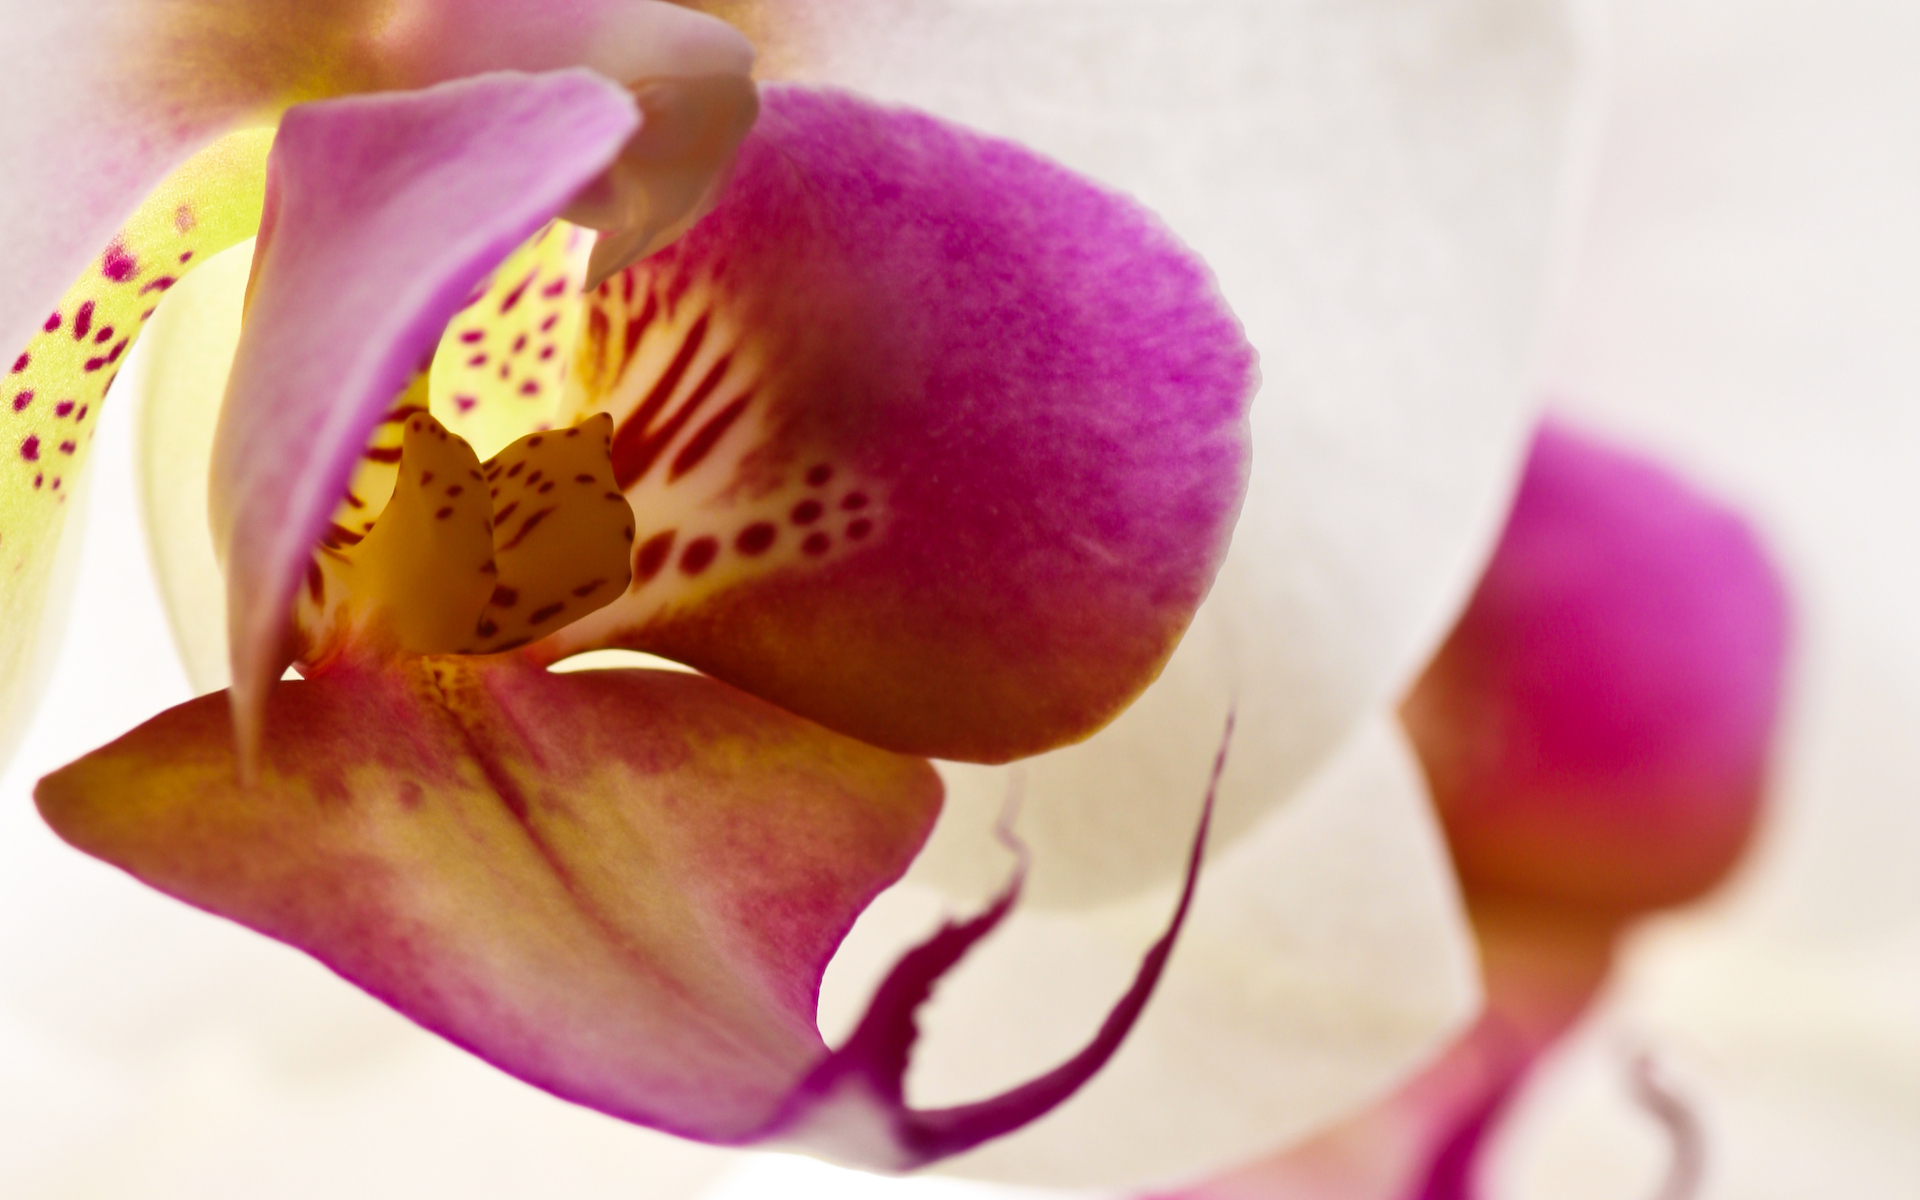 Wallpaper orchidee steine  Orchidee Wallpaper, 1920x1200 | widescreen-wallpapers.de